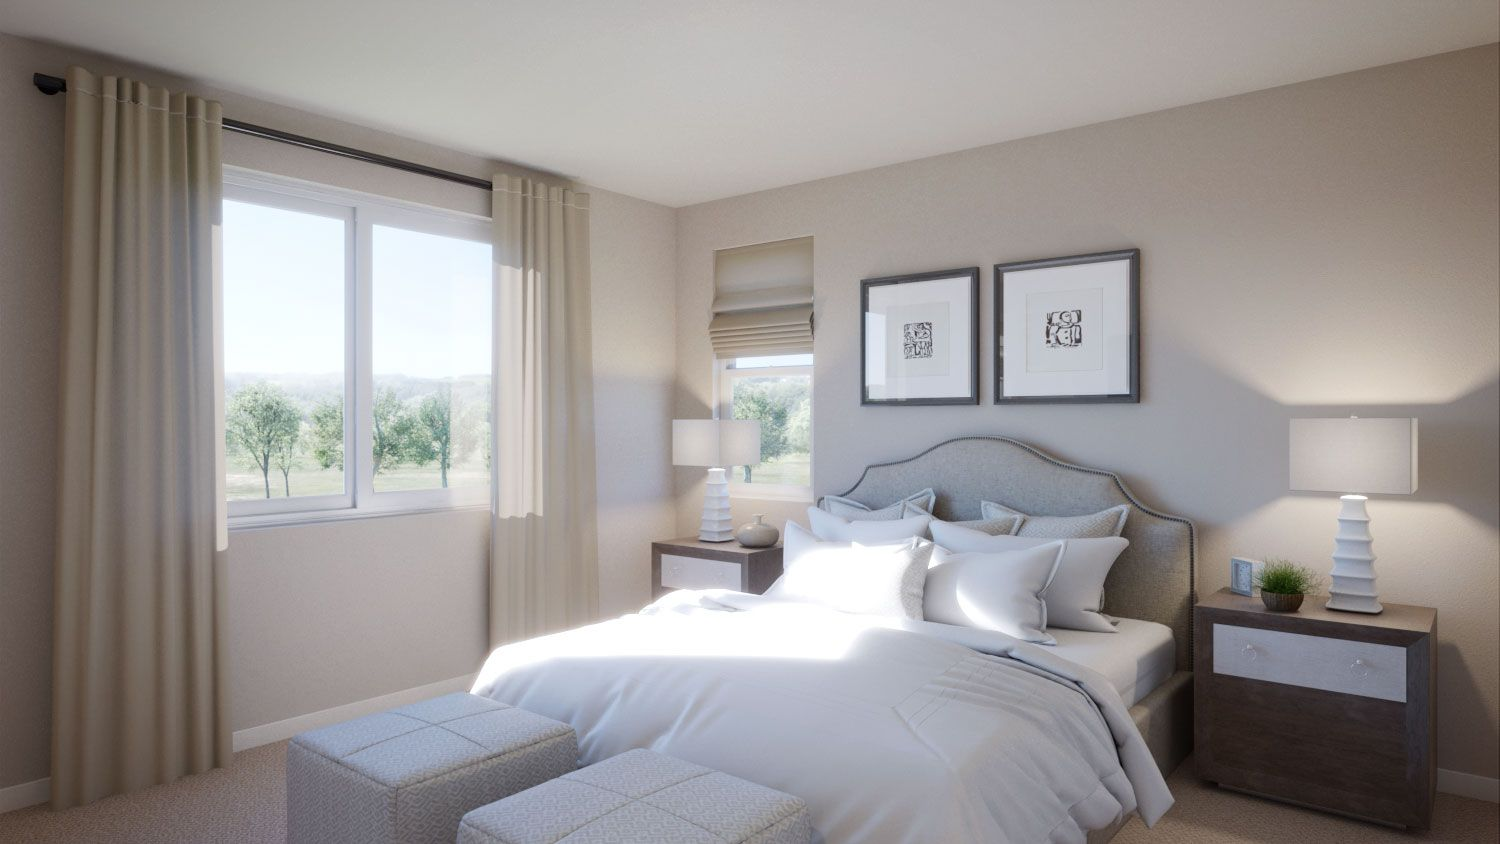 Bedroom featured in the Residence 1 By TRI Pointe Homes in Vallejo-Napa, CA